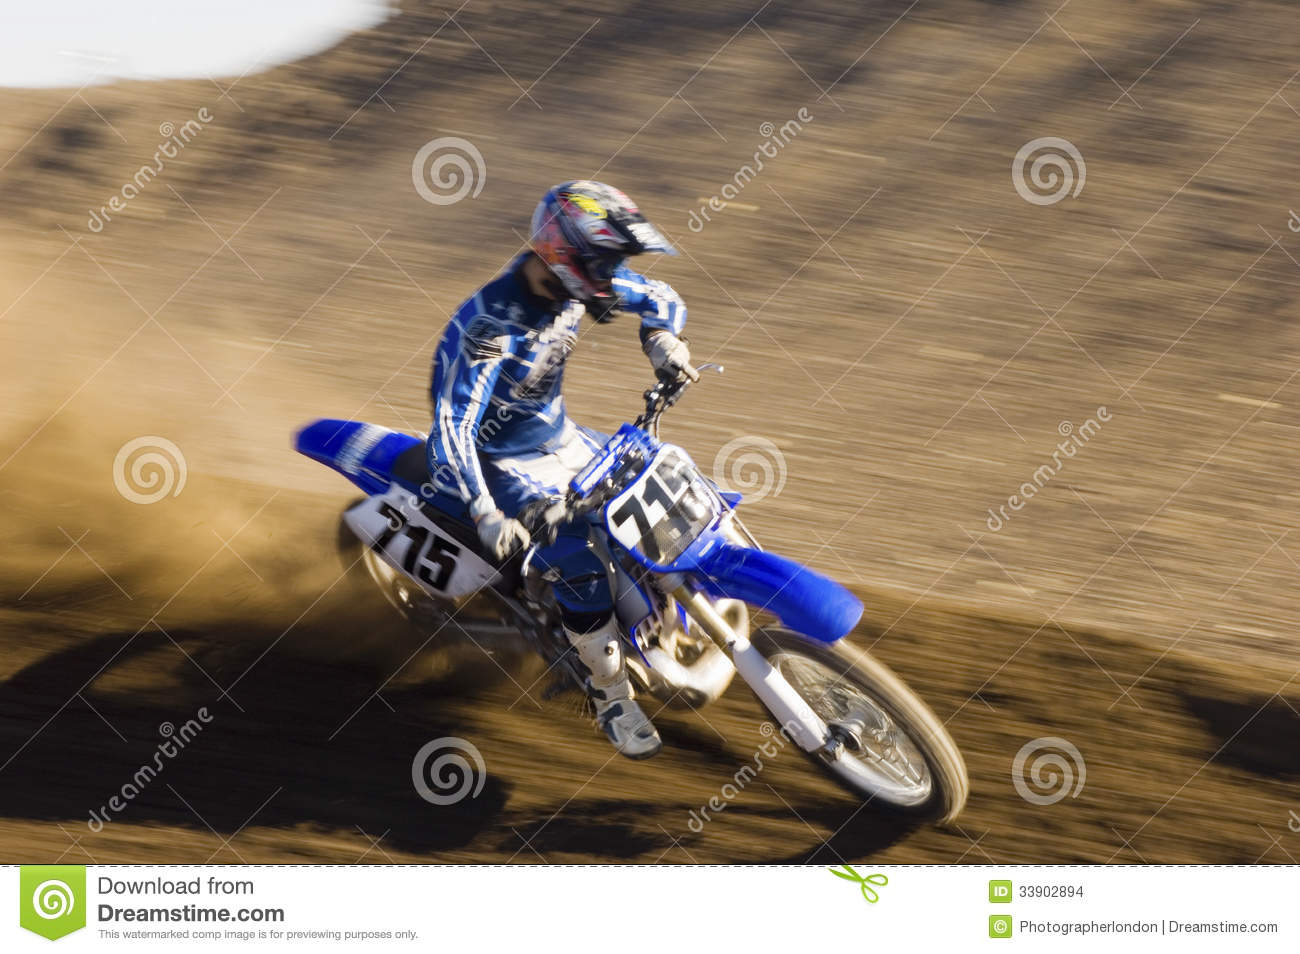 Motocross Racer Riding Motorcycle On Dirt Track